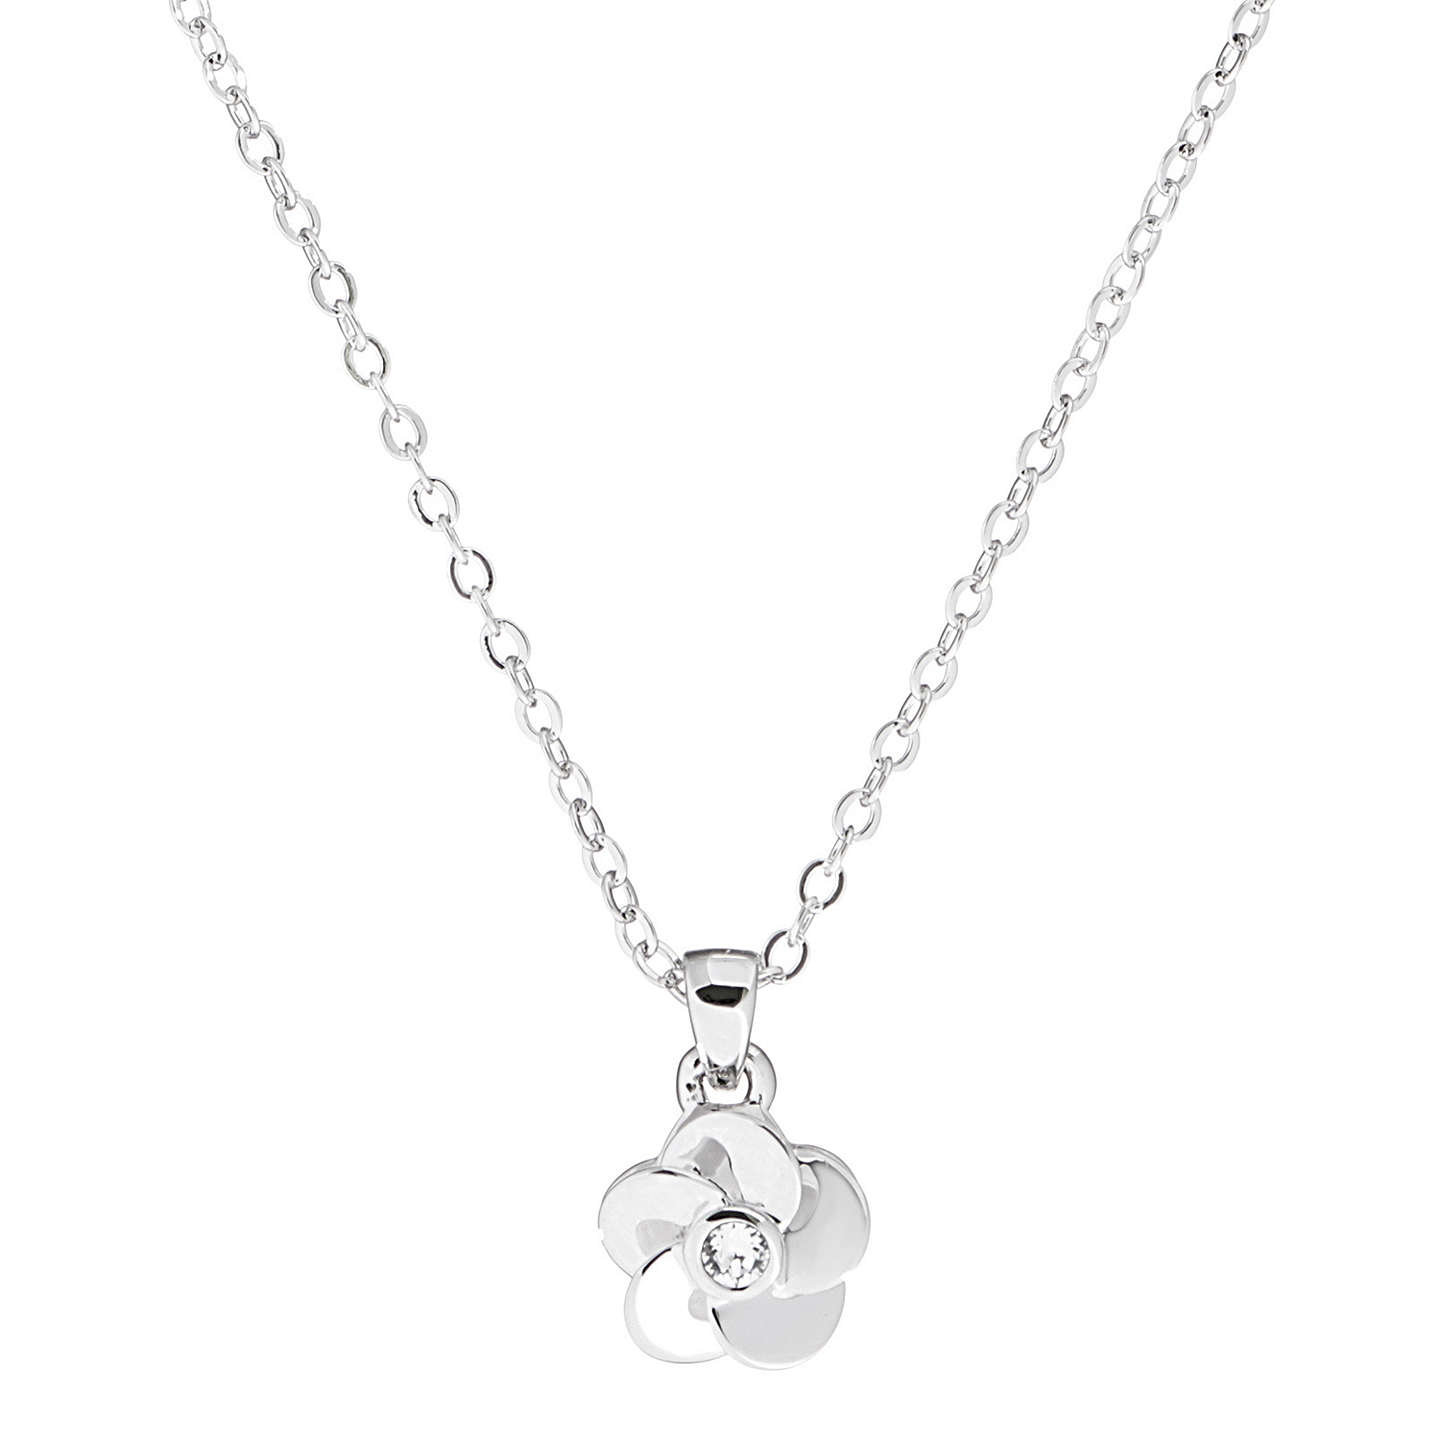 Ted baker parnela flower pendant necklace at john lewis buyted baker parnela flower pendant necklace silver online at johnlewis mozeypictures Image collections